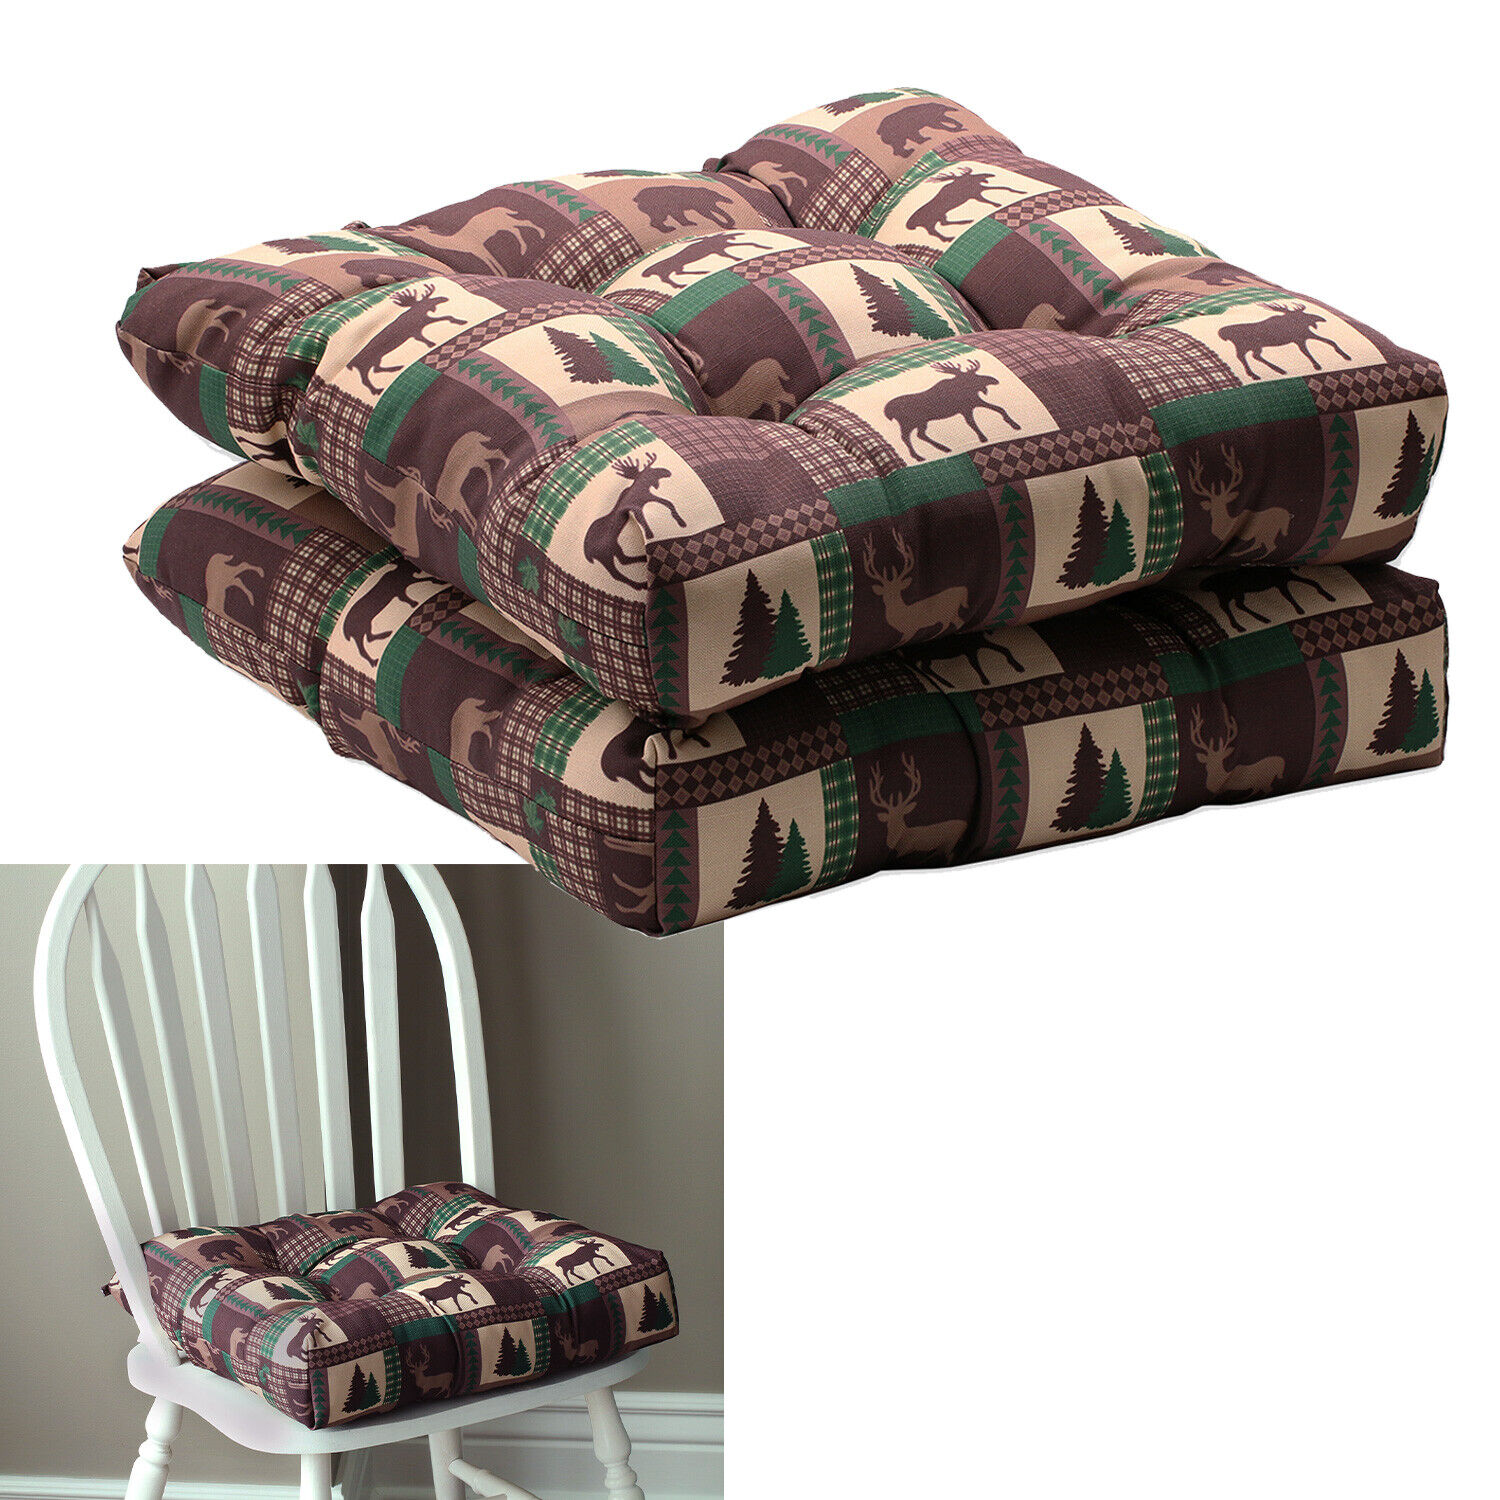 2-Pack Rustic Cabin Kitchen Chair Pad Seat Cushion with Ties, Brown Green Tan Home & Garden